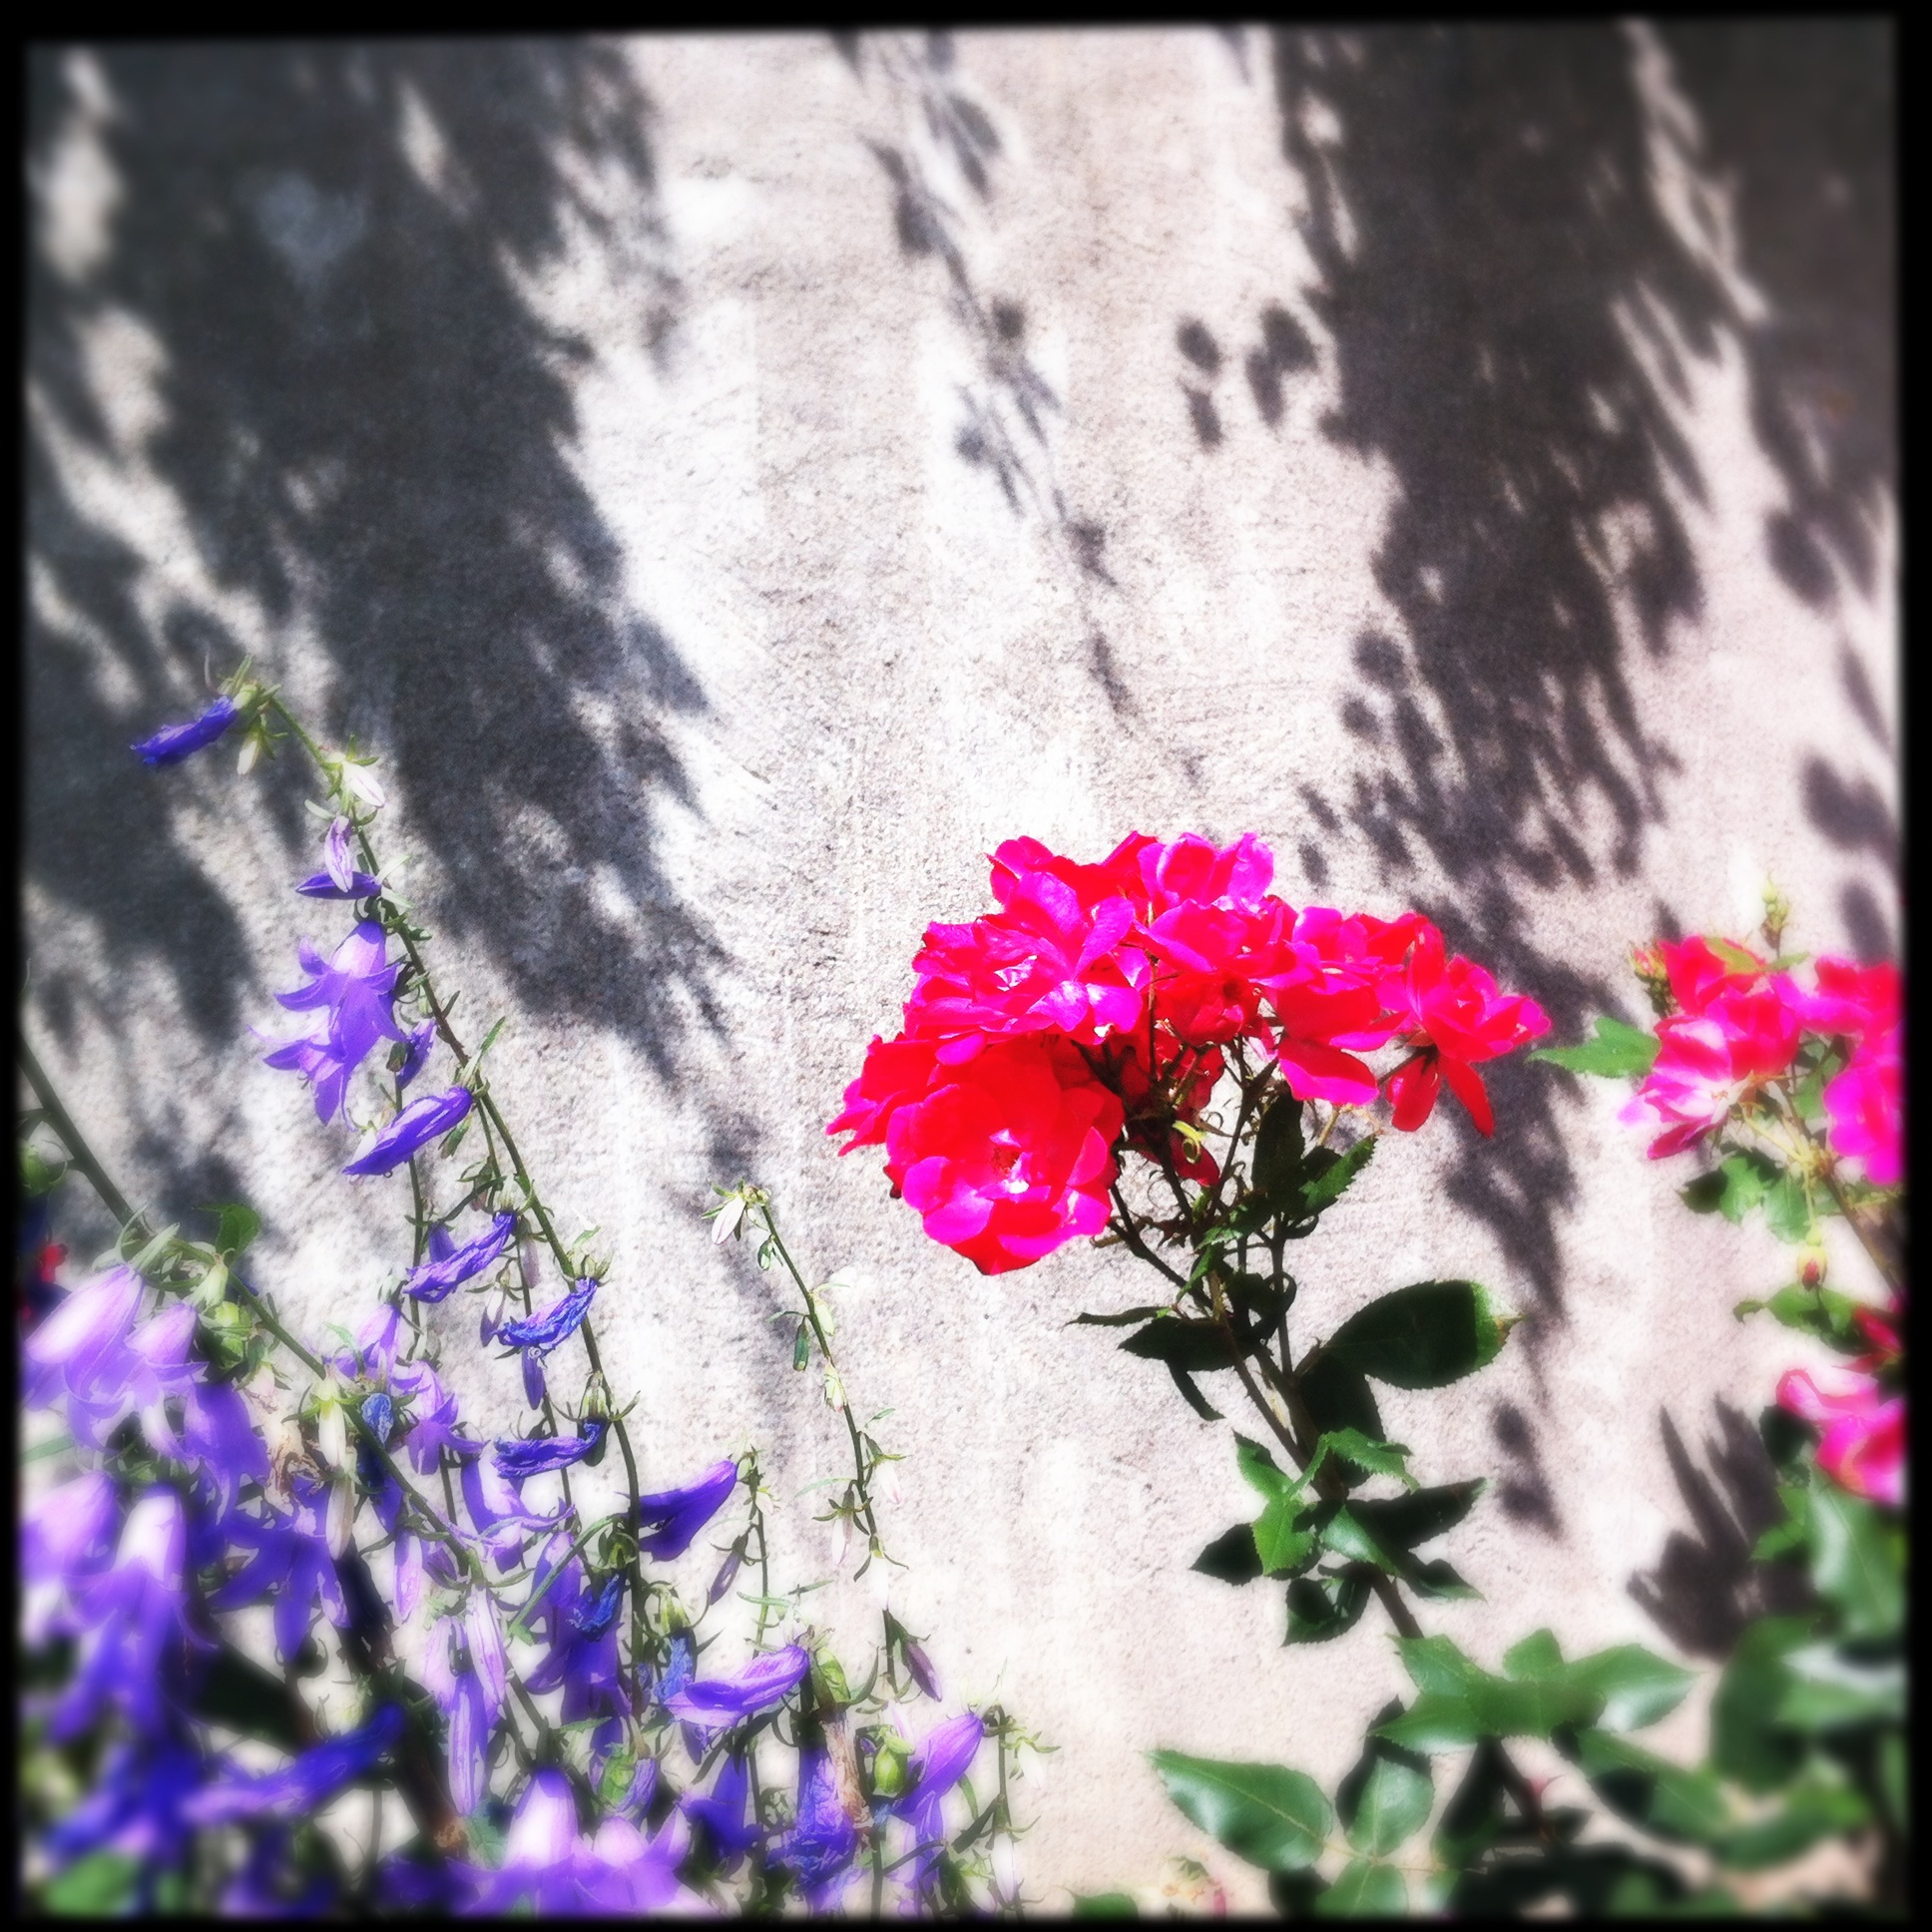 iPhone photo. Hipstamatic app with Loftus lens and Sugar film